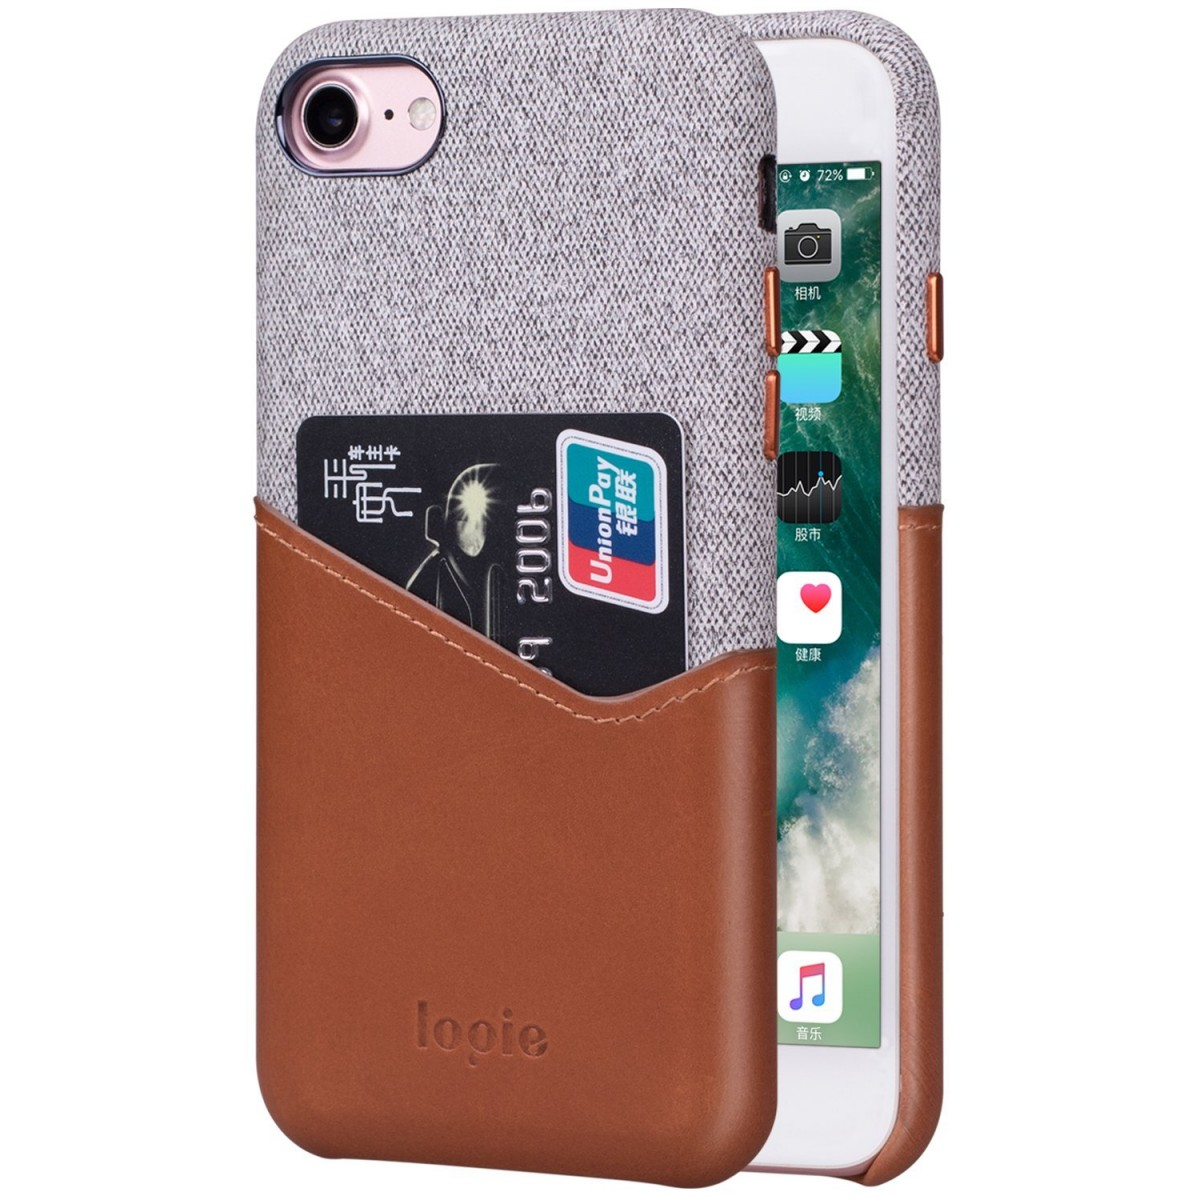 promo code c6a7a 44150 iPhone 8 Case, iPhone 7 Case, Lopie [Sea Island Cotton Series] Fabric Slim  Fit Hard Back Case Wallet Cover with Genuine Leather Card Holder Design for  ...